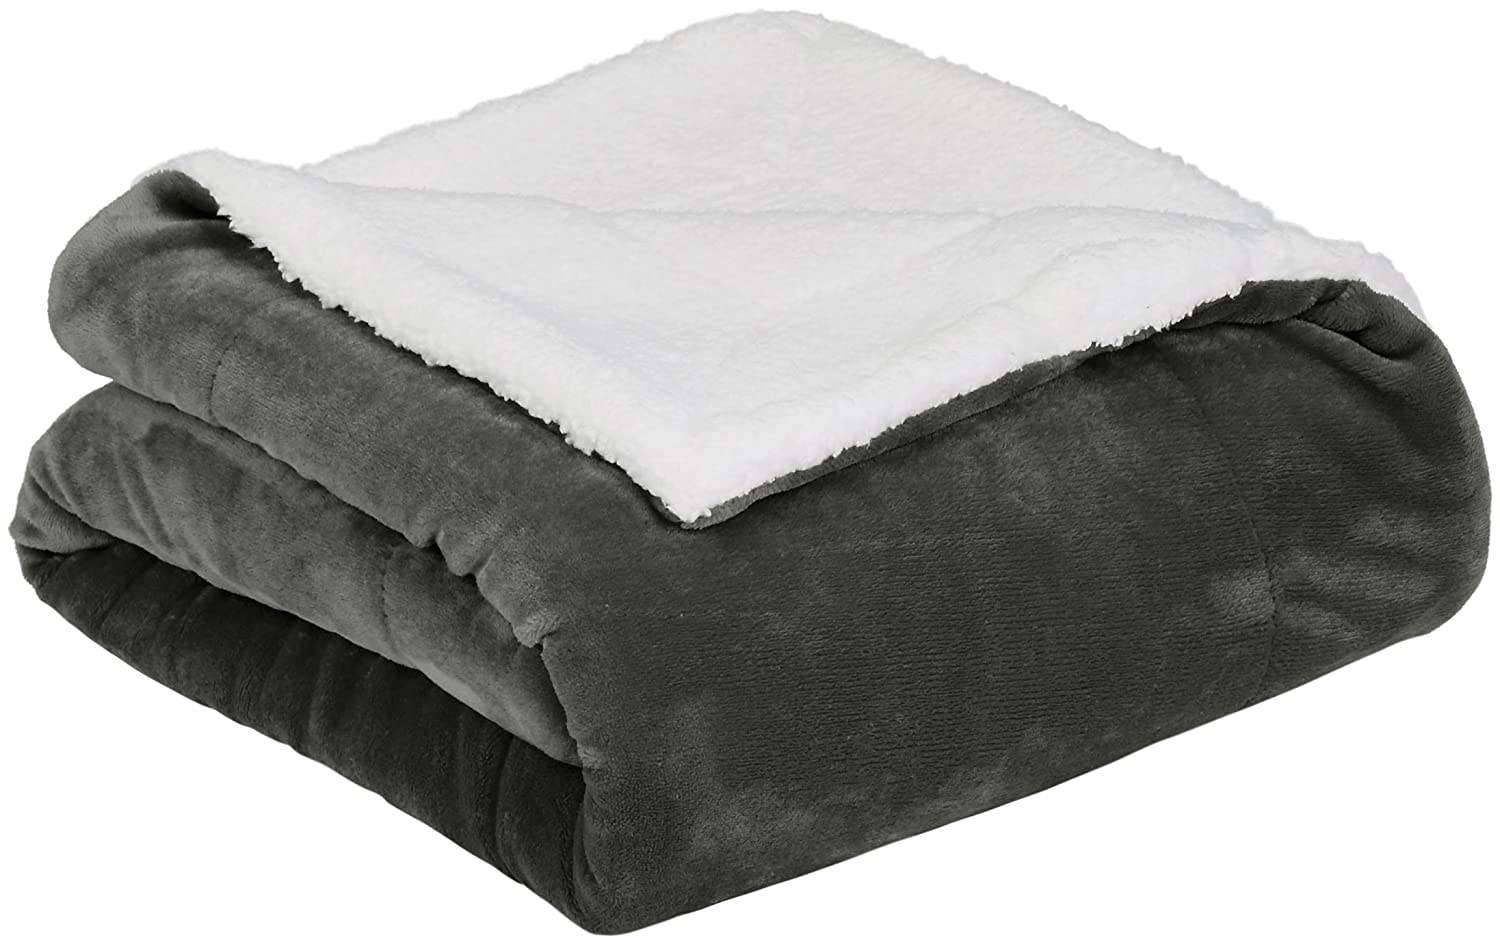 AmazonBasics Micromink Sherpa Blanket - Super-Soft, Wrinkle-Resistant - Twin, Charcoal